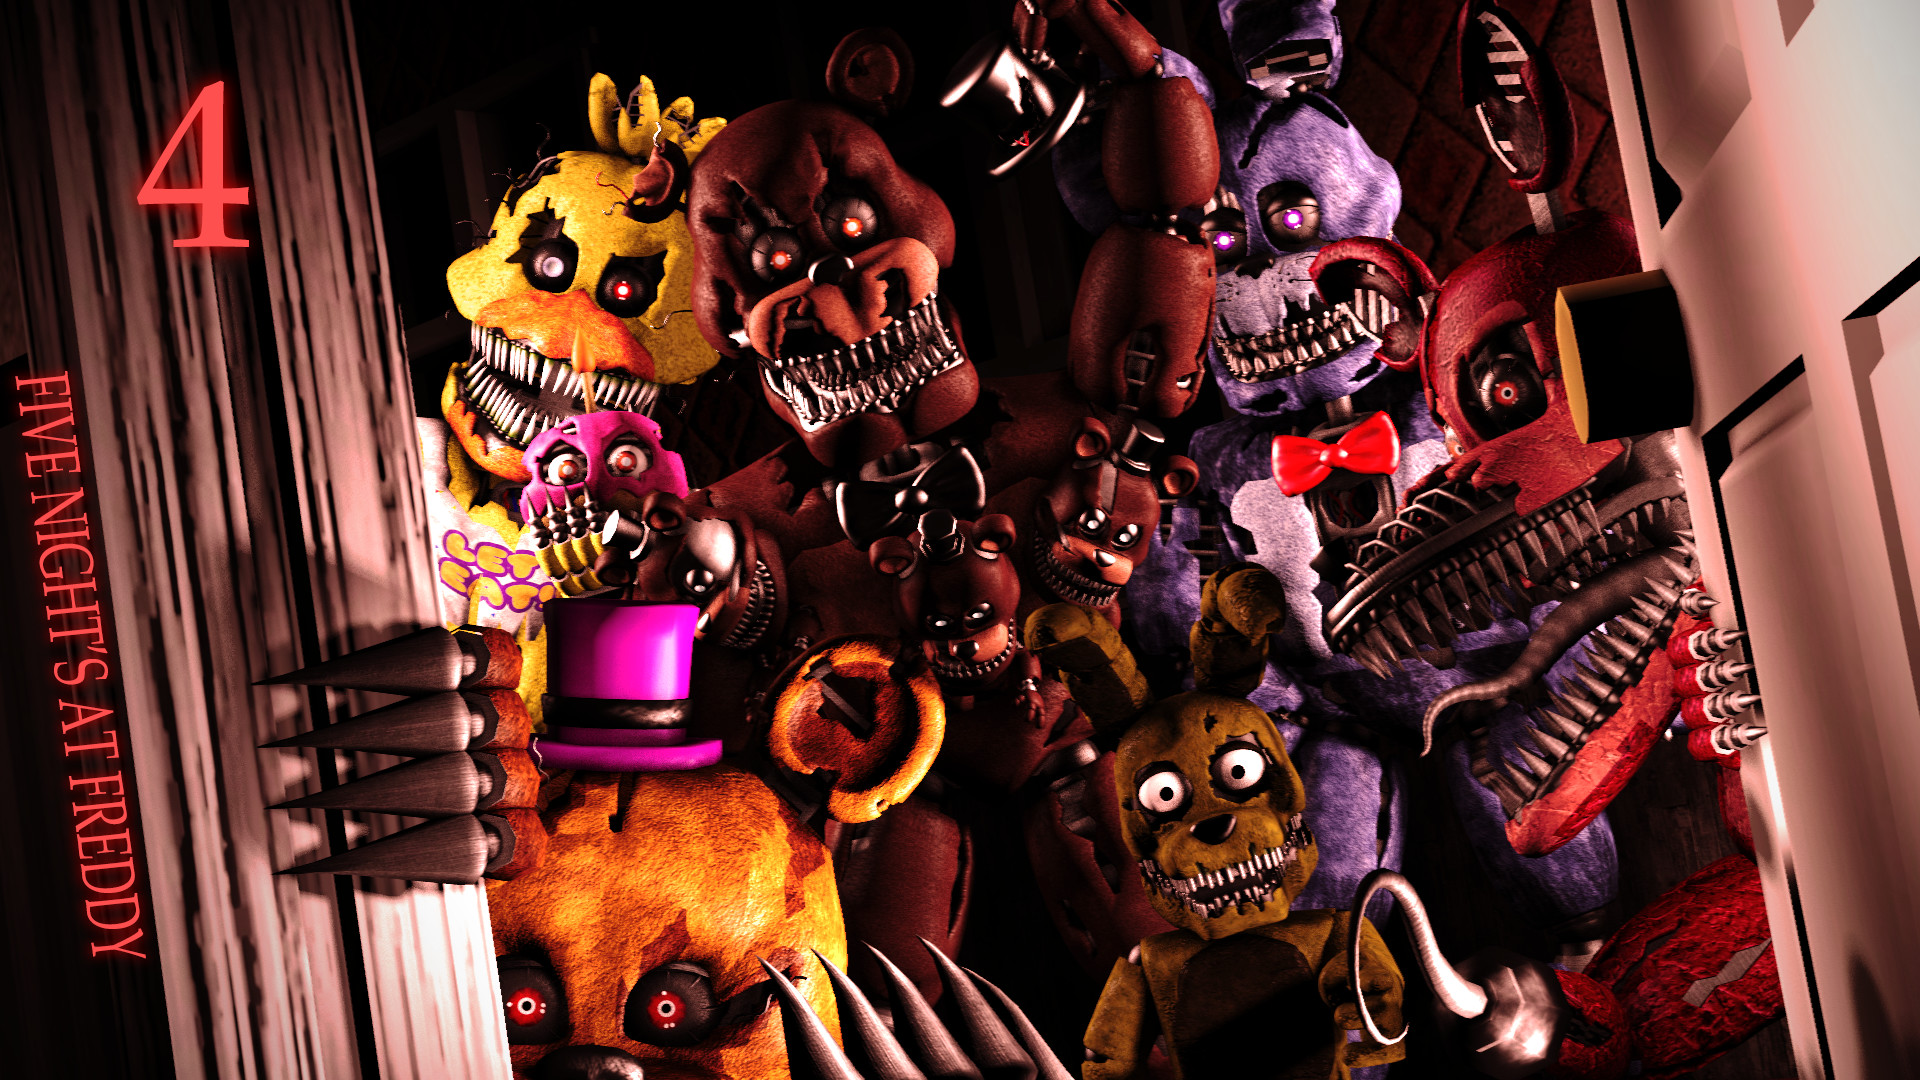 1920x1080 Five Nights at Freddys 4 2015 PC Game Free Download - Free Games Download